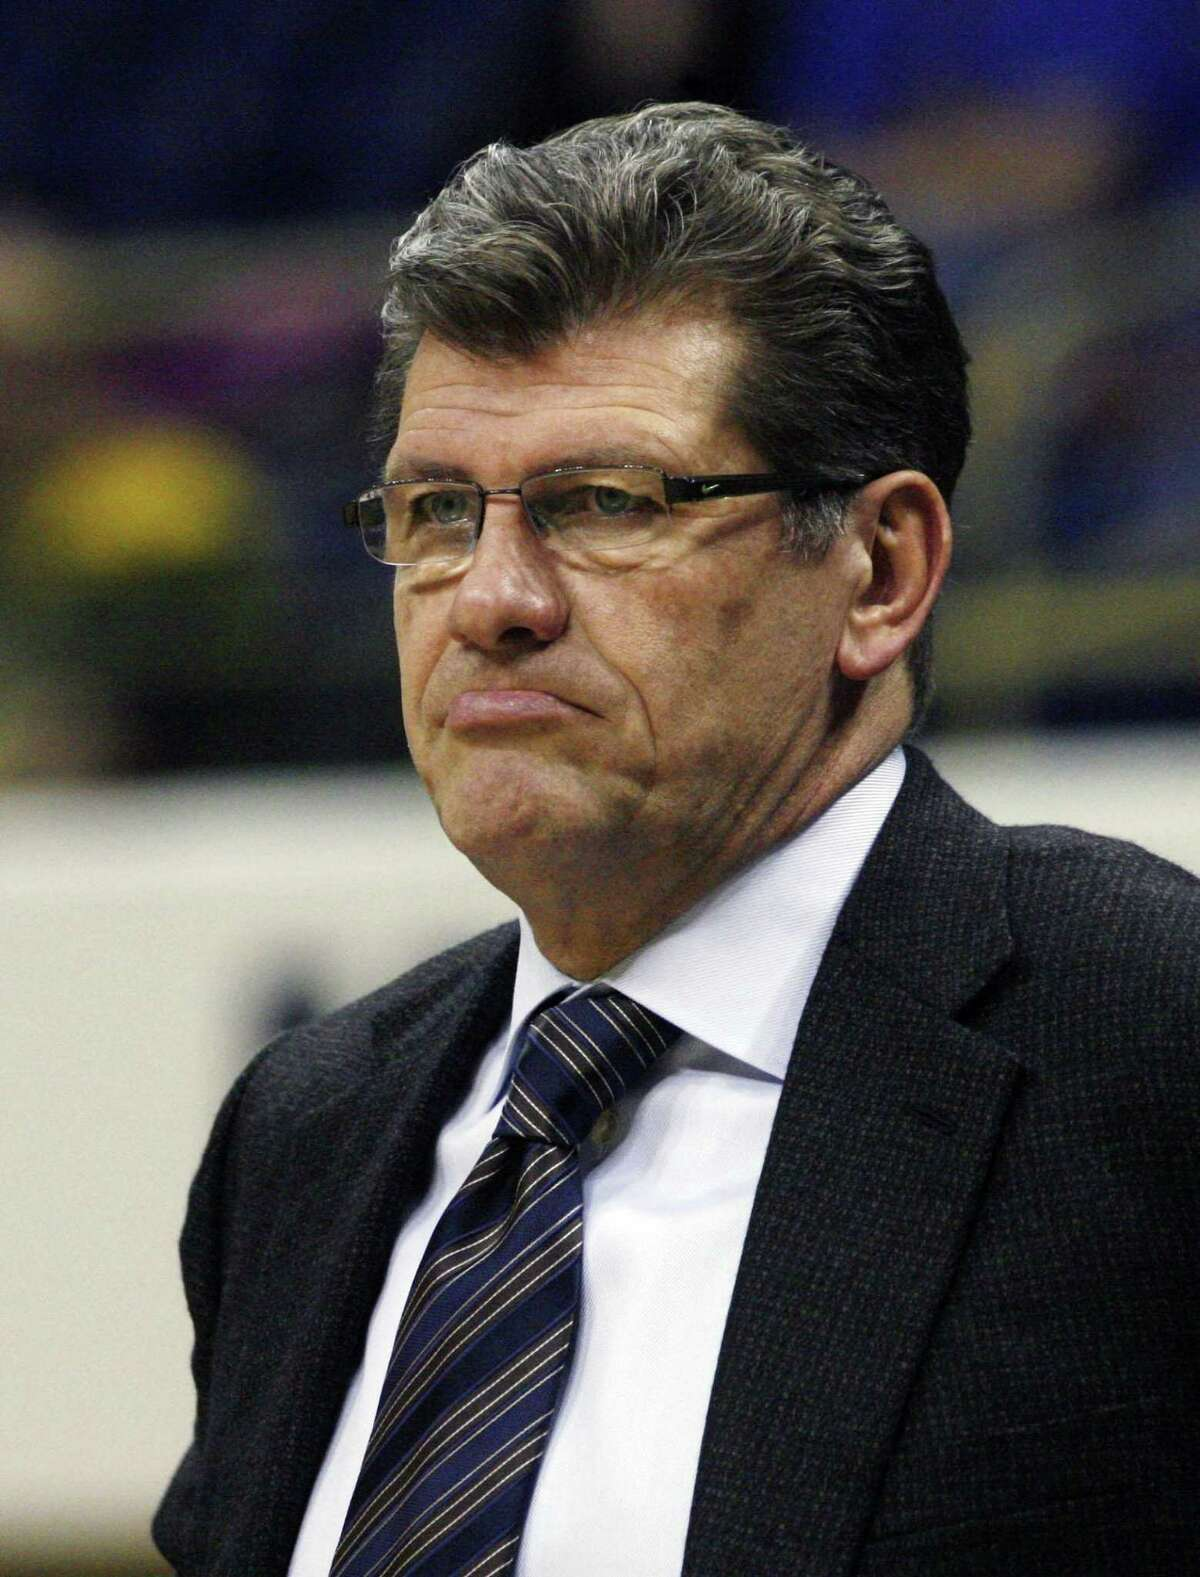 February 21, 2012; Pittsburgh,PA, USA: Connecticut Huskies head coach Geno Auriemma reacts on the sidelines against the Pittsburgh Panthers during the second half at the Petersen Events Center. UConn won 86-37. Mandatory Credit: Charles LeClaire-USPRESSWIRE